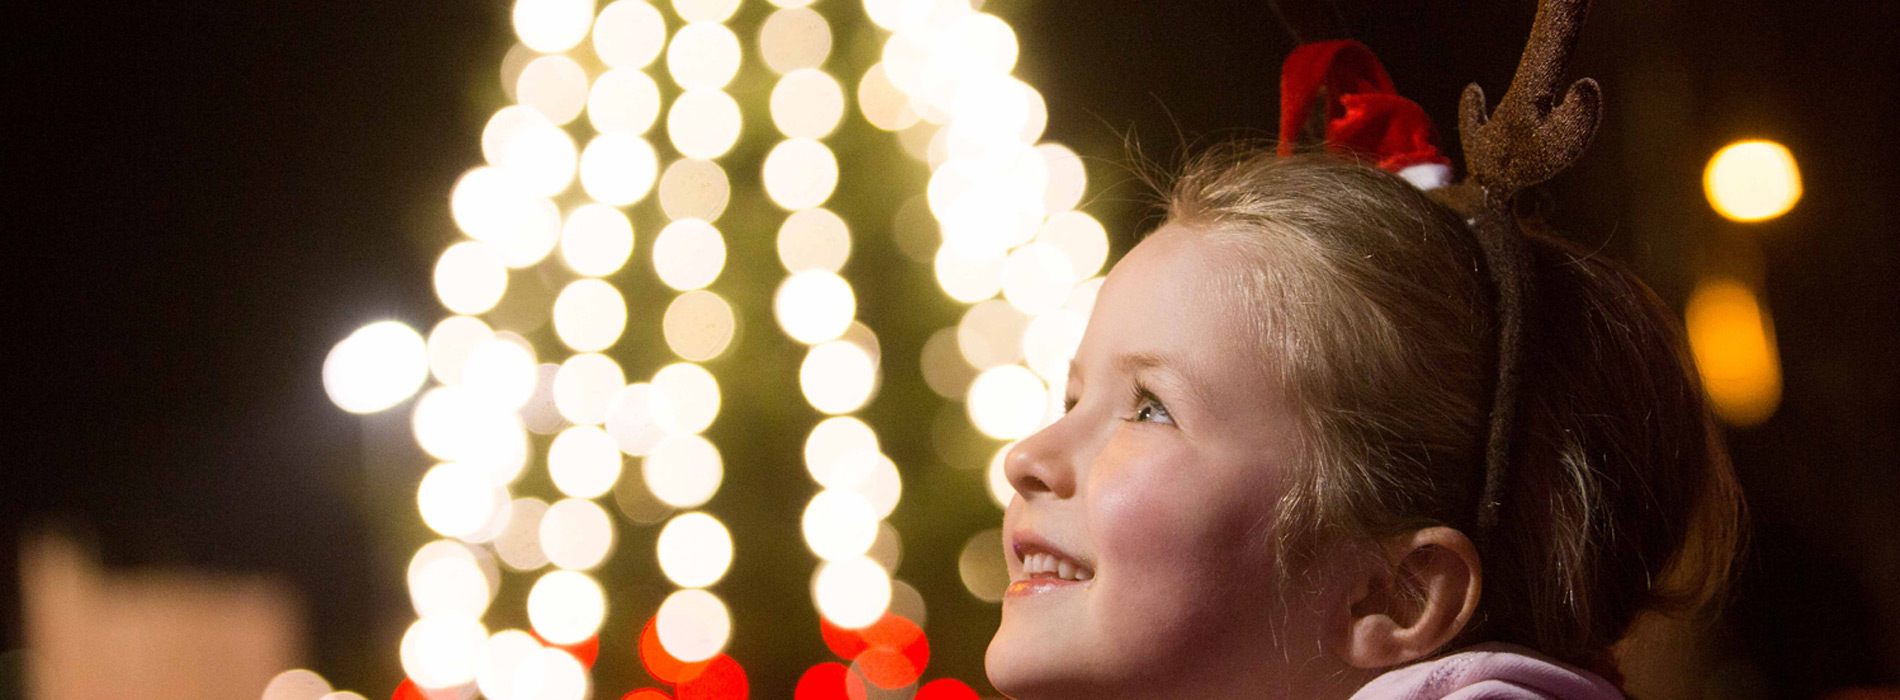 Cork City Lightshttps://www.corkcity.ie/en/re-imagine-glow/news/the-countdown-to-christmas-begins-as-cork-lights-up-18-november-2020.html